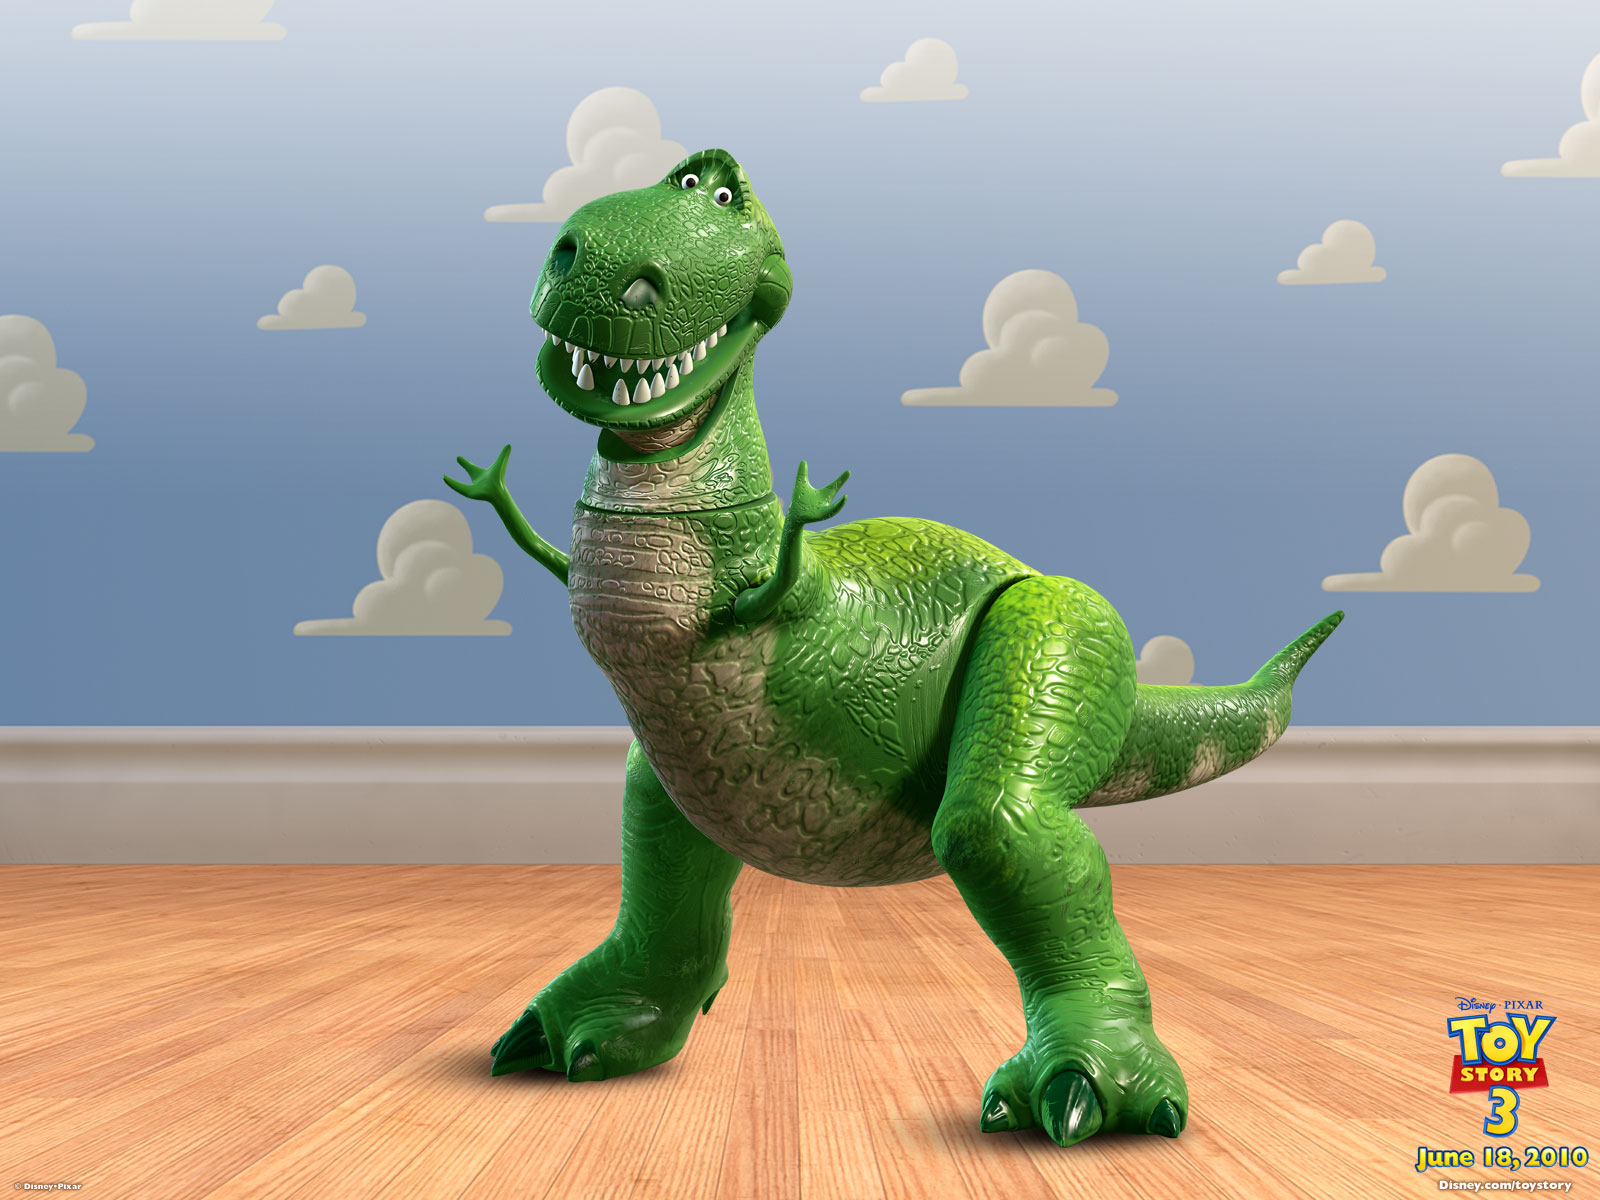 Toy Story Dinosaur : Rex the dinosaur from toy story desktop wallpaper